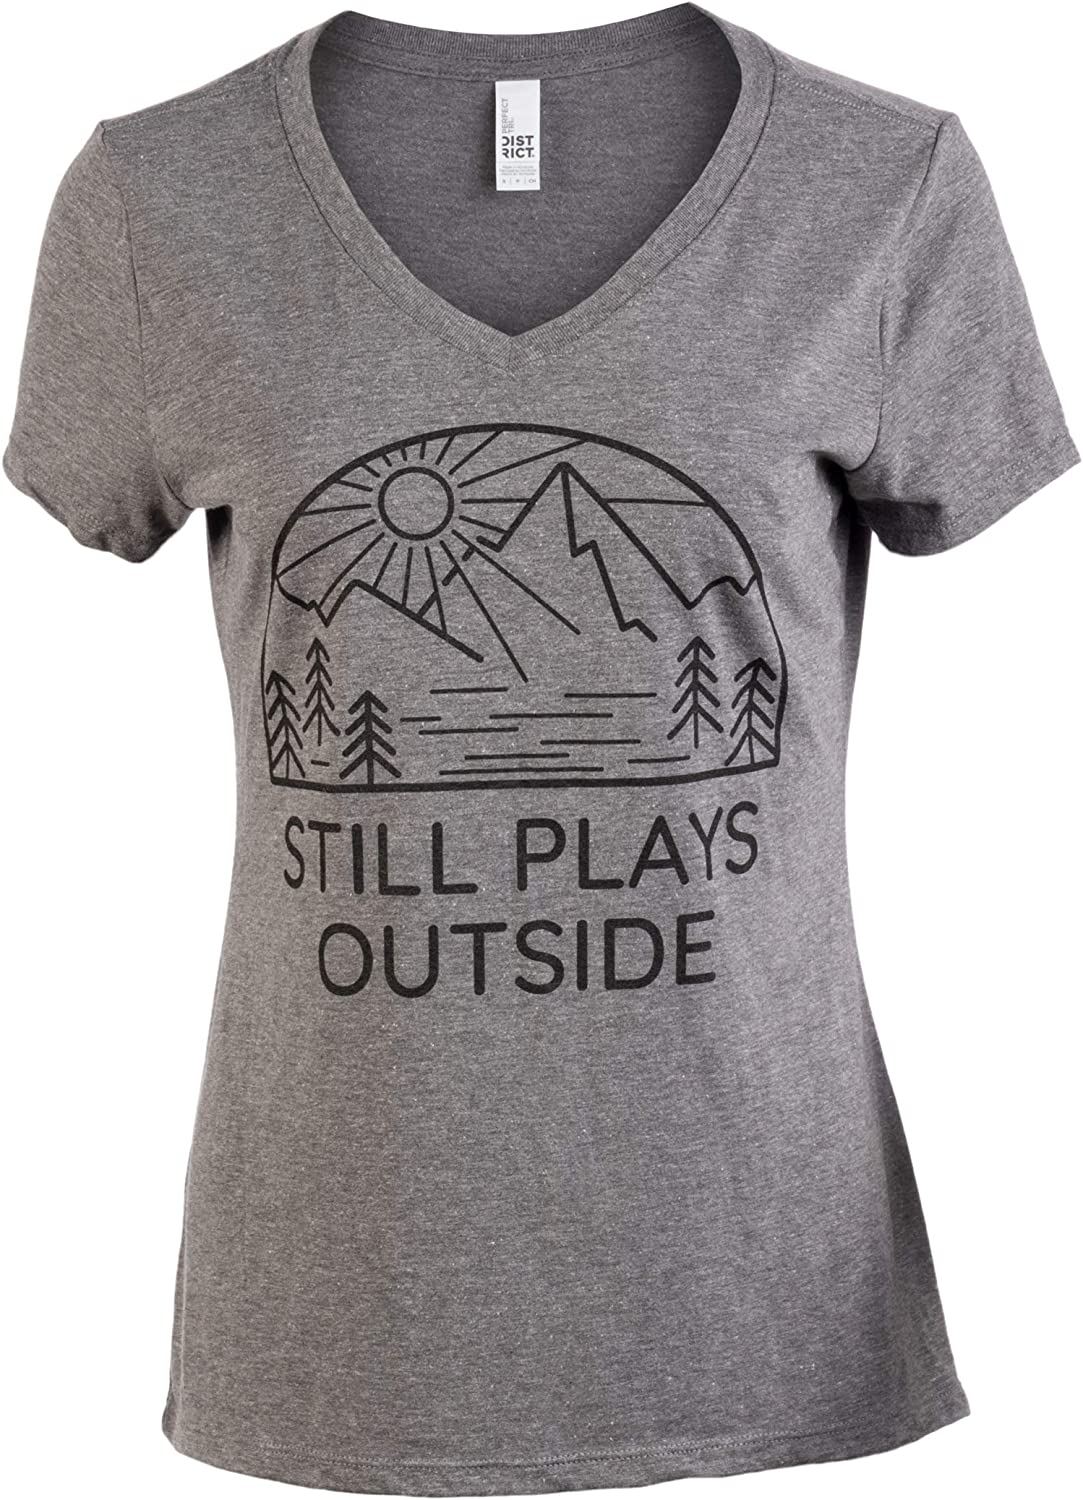 Still Plays Outside | Funny Cool Camping Hiking Camp Hike Women Outdoors Shirt Top